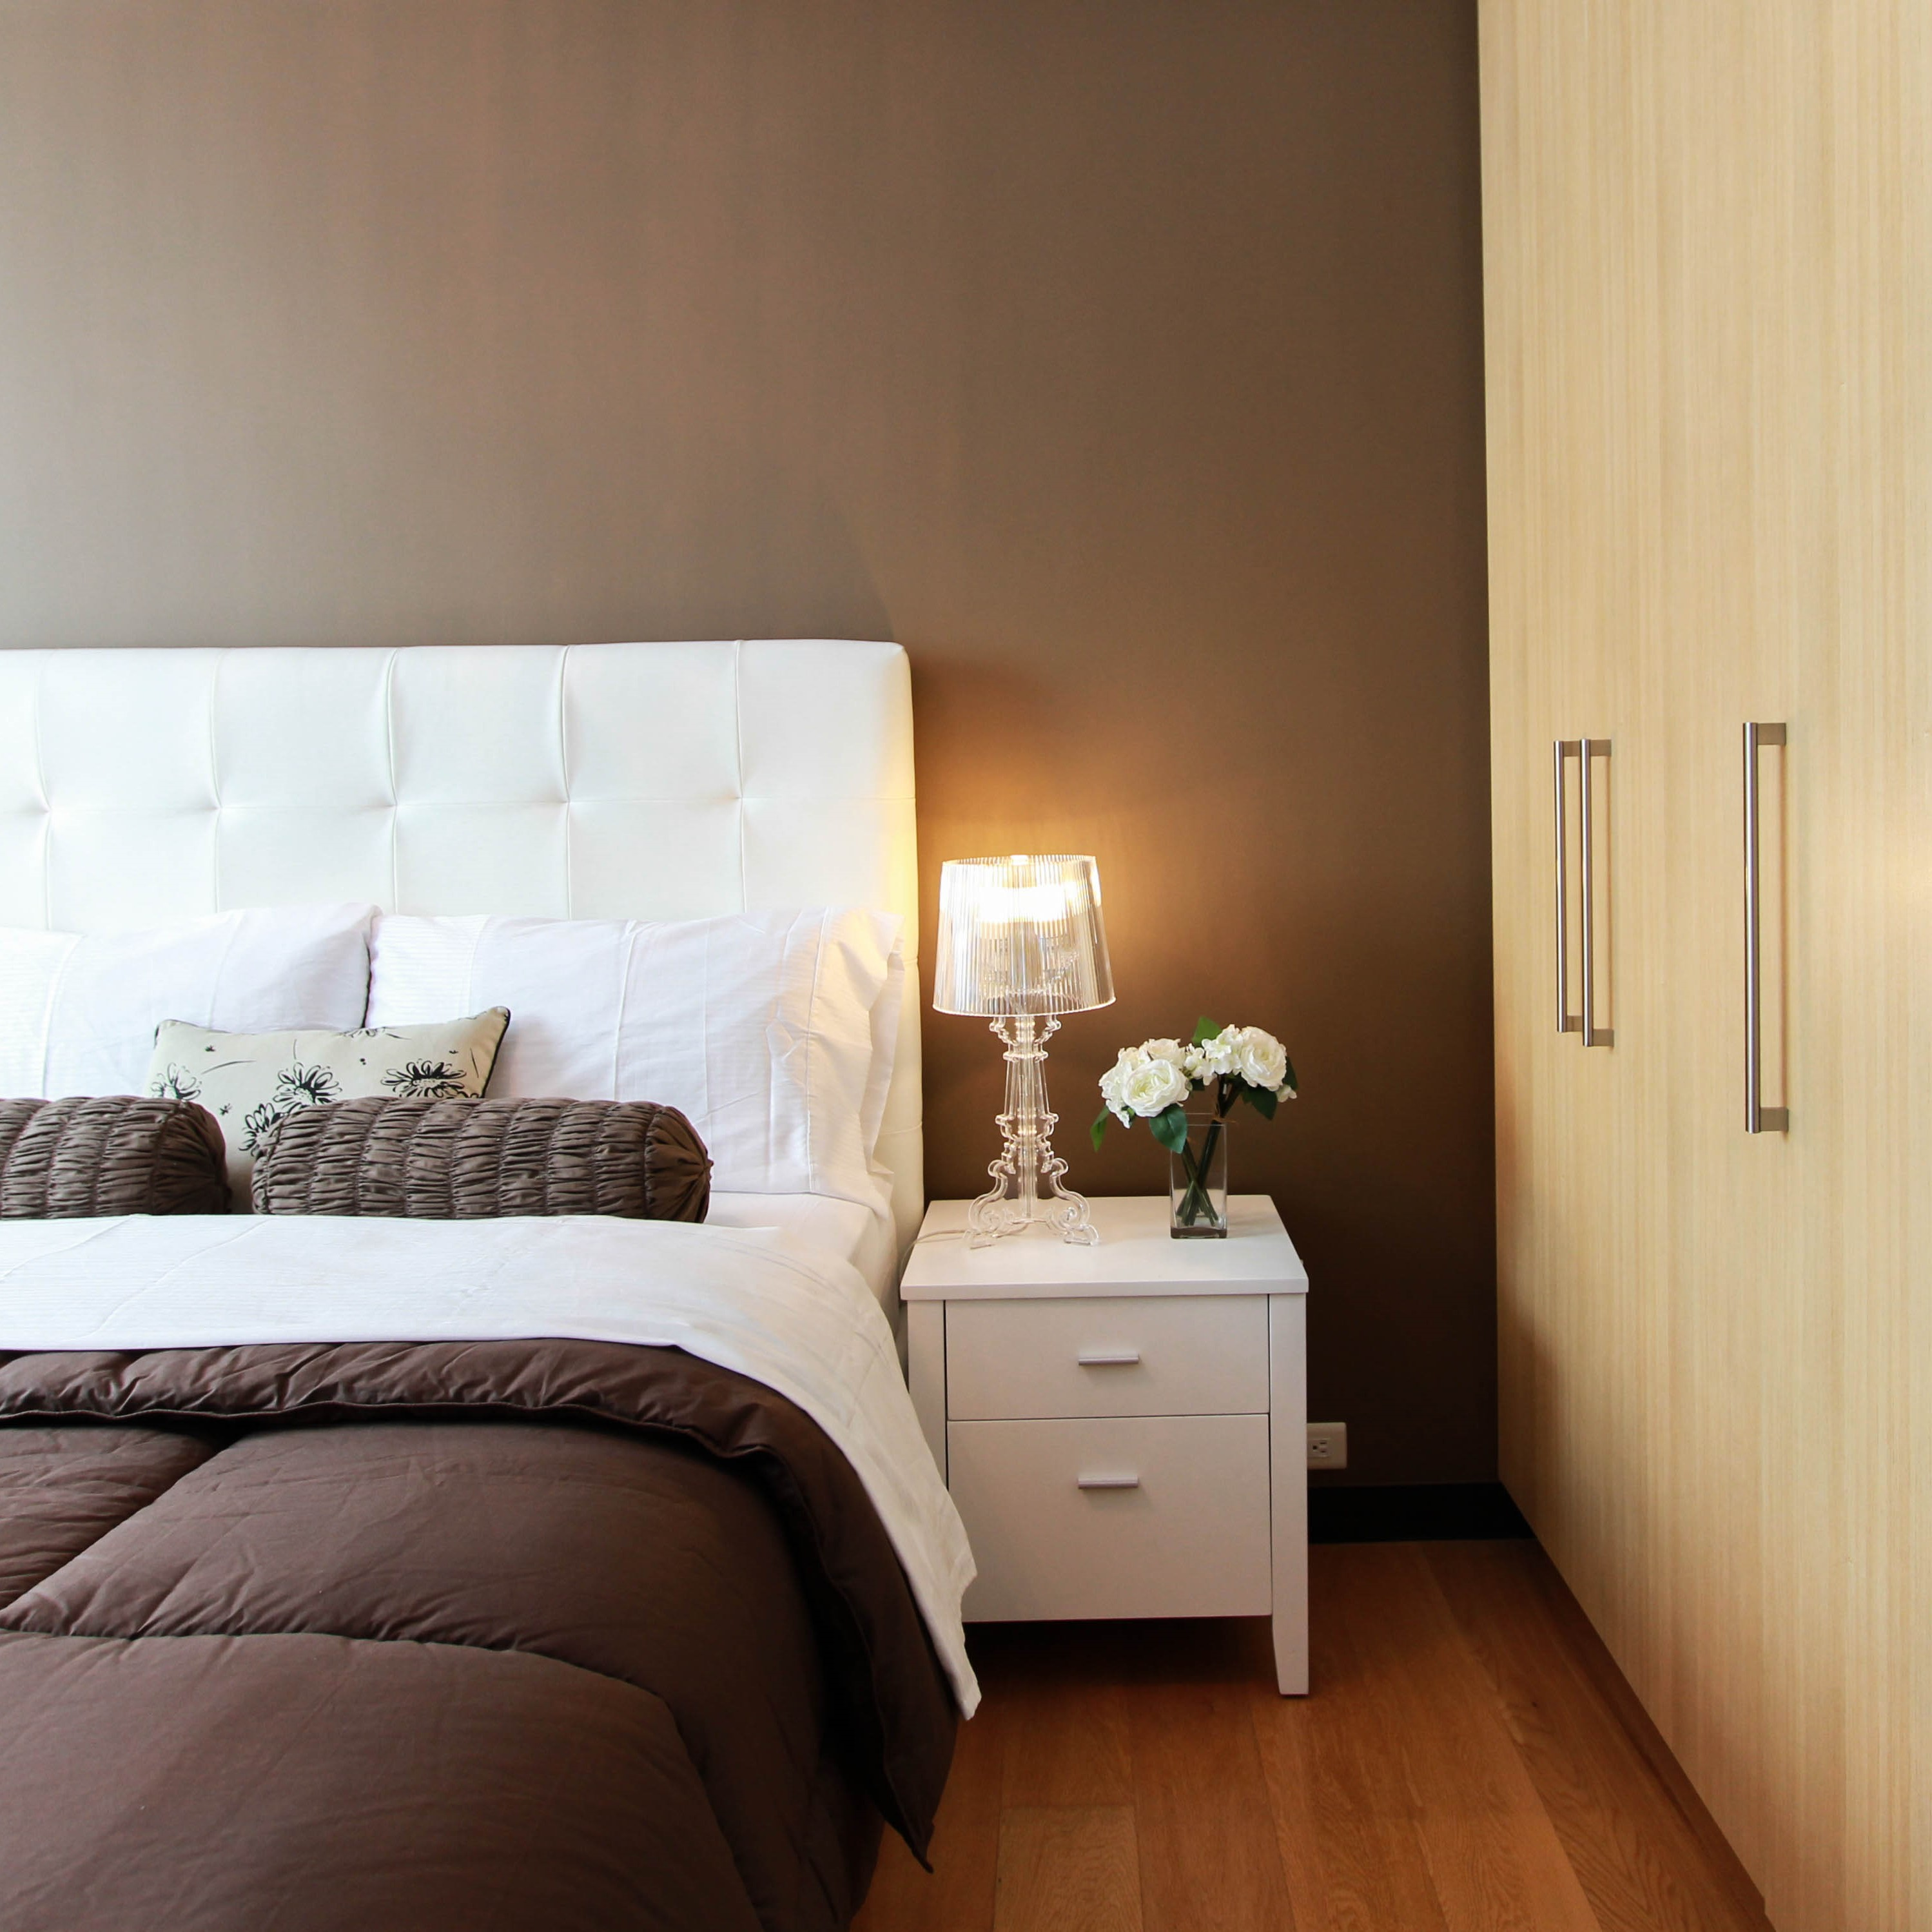 How Much Does It Cost To Furnish An Apartment From Scratch?